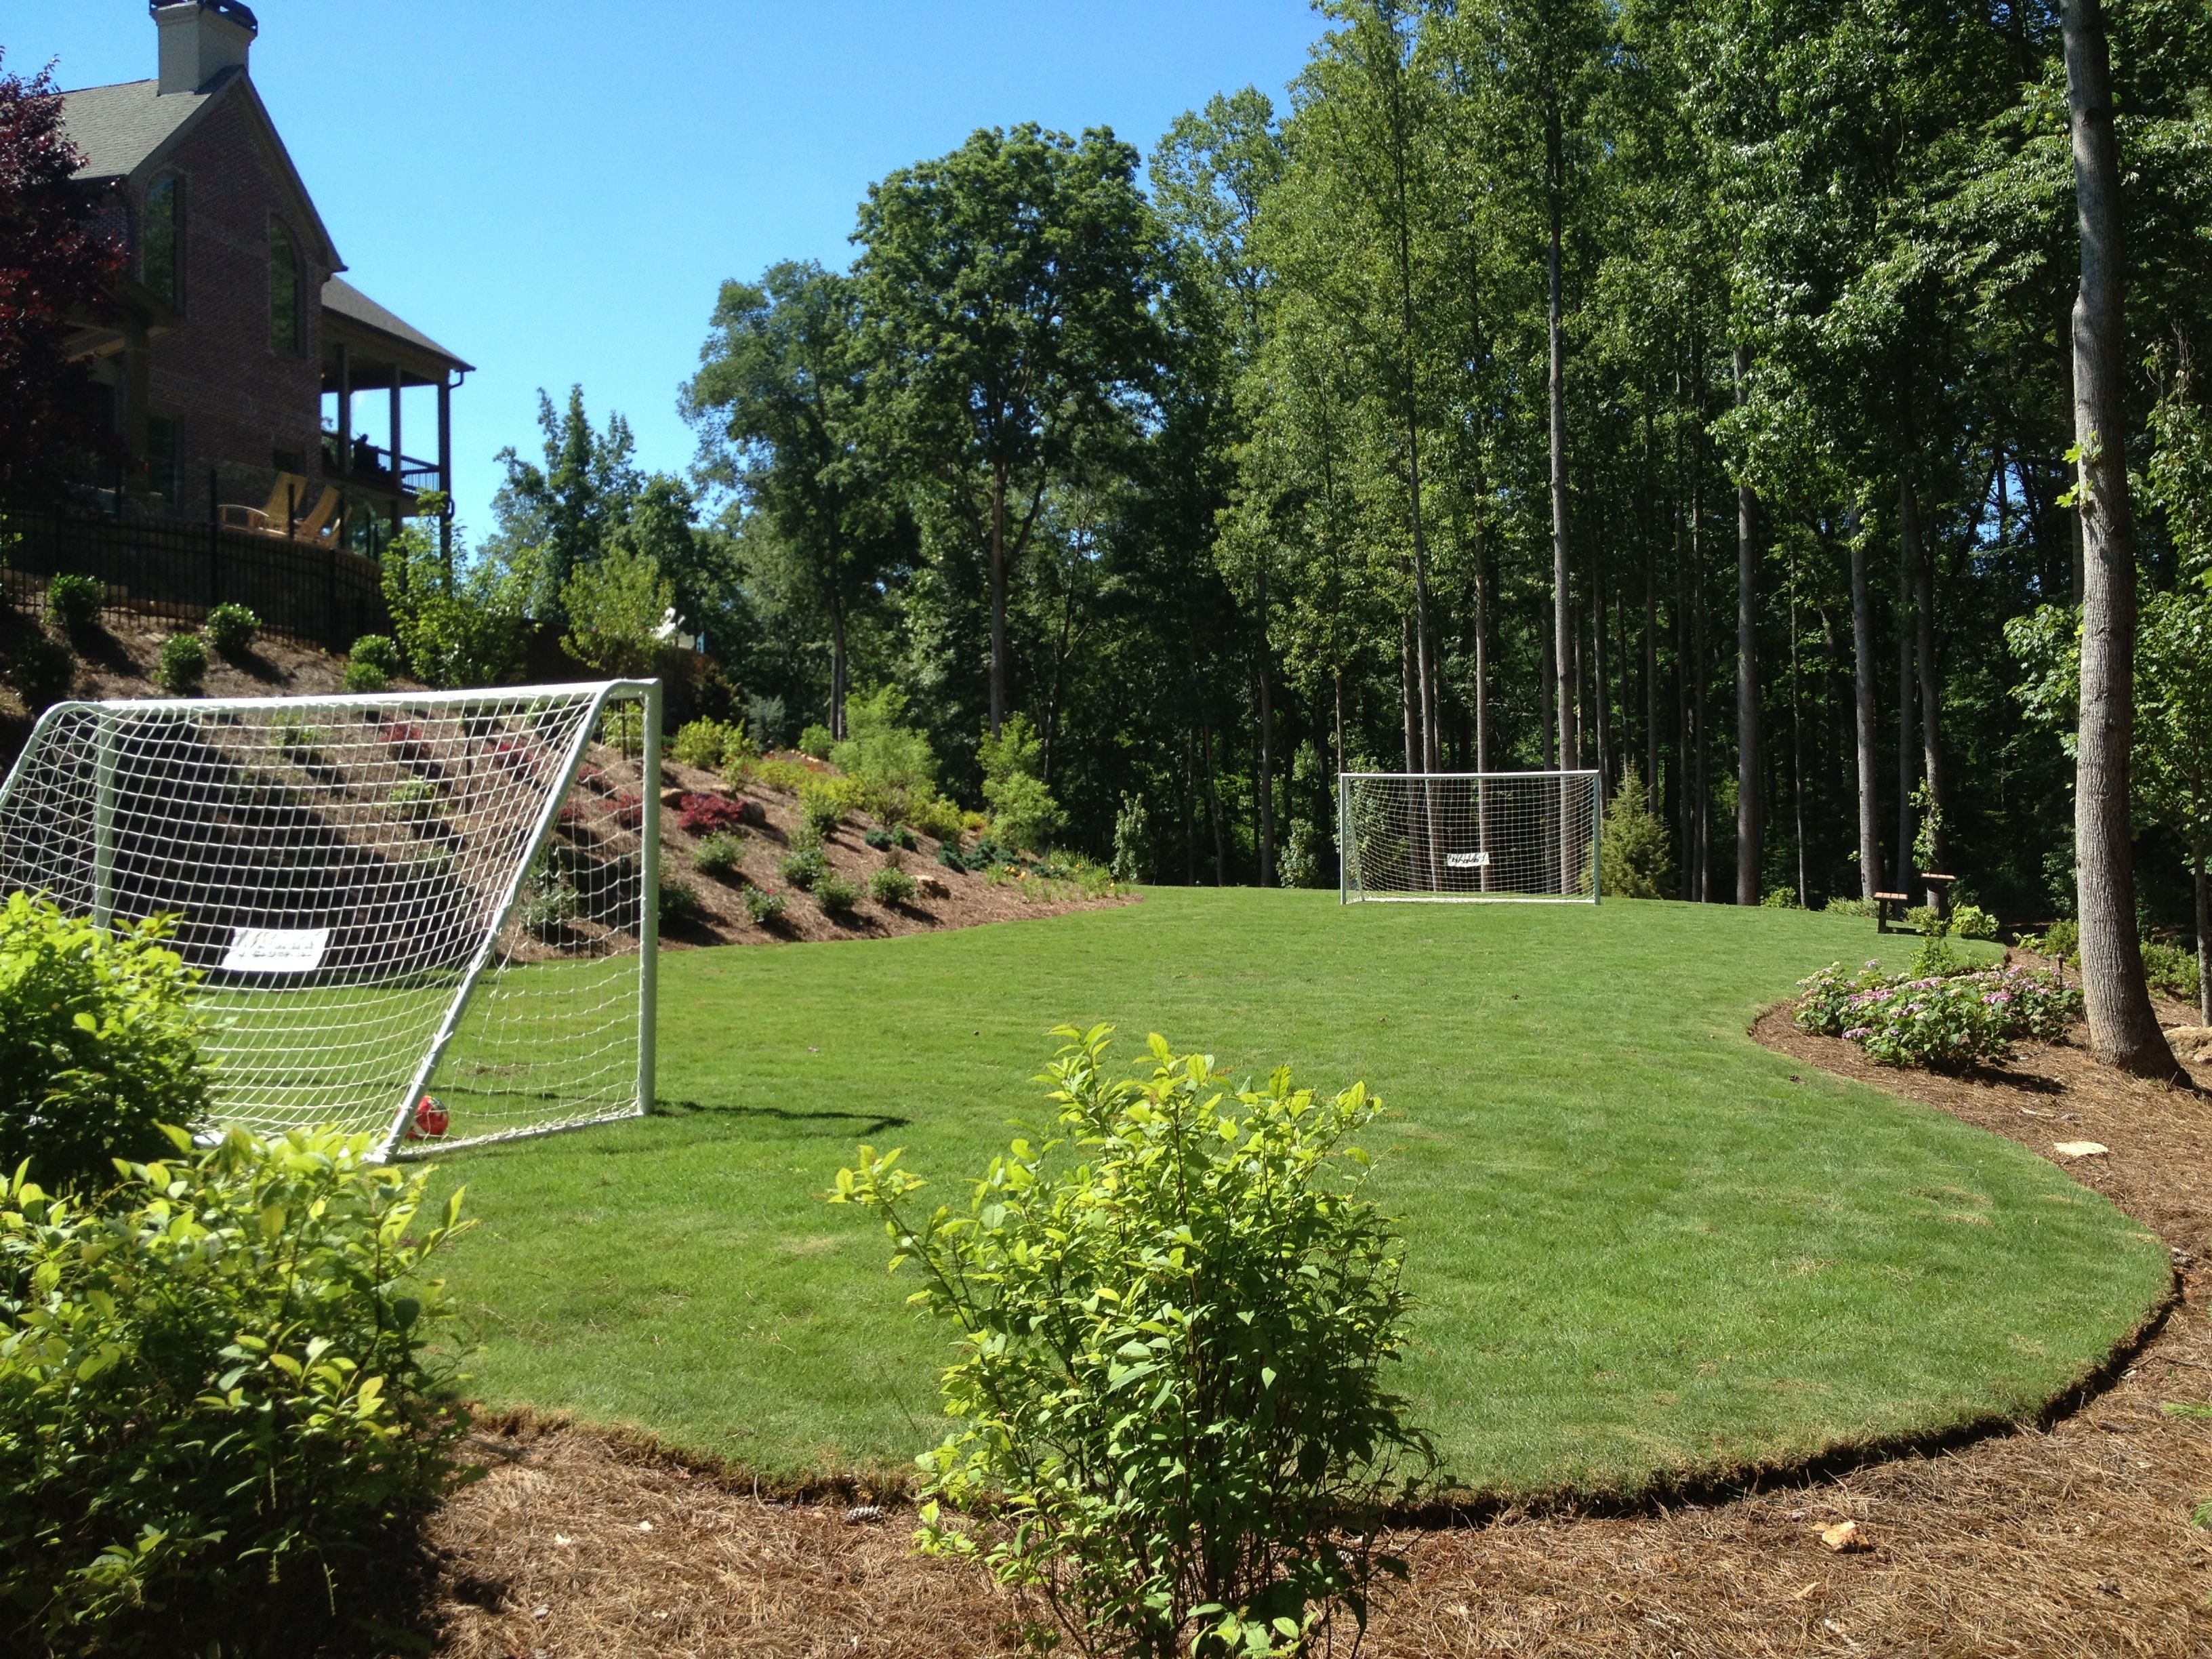 Incroyable Custom Soccer Field Designed And Built By Outdoor Advantage